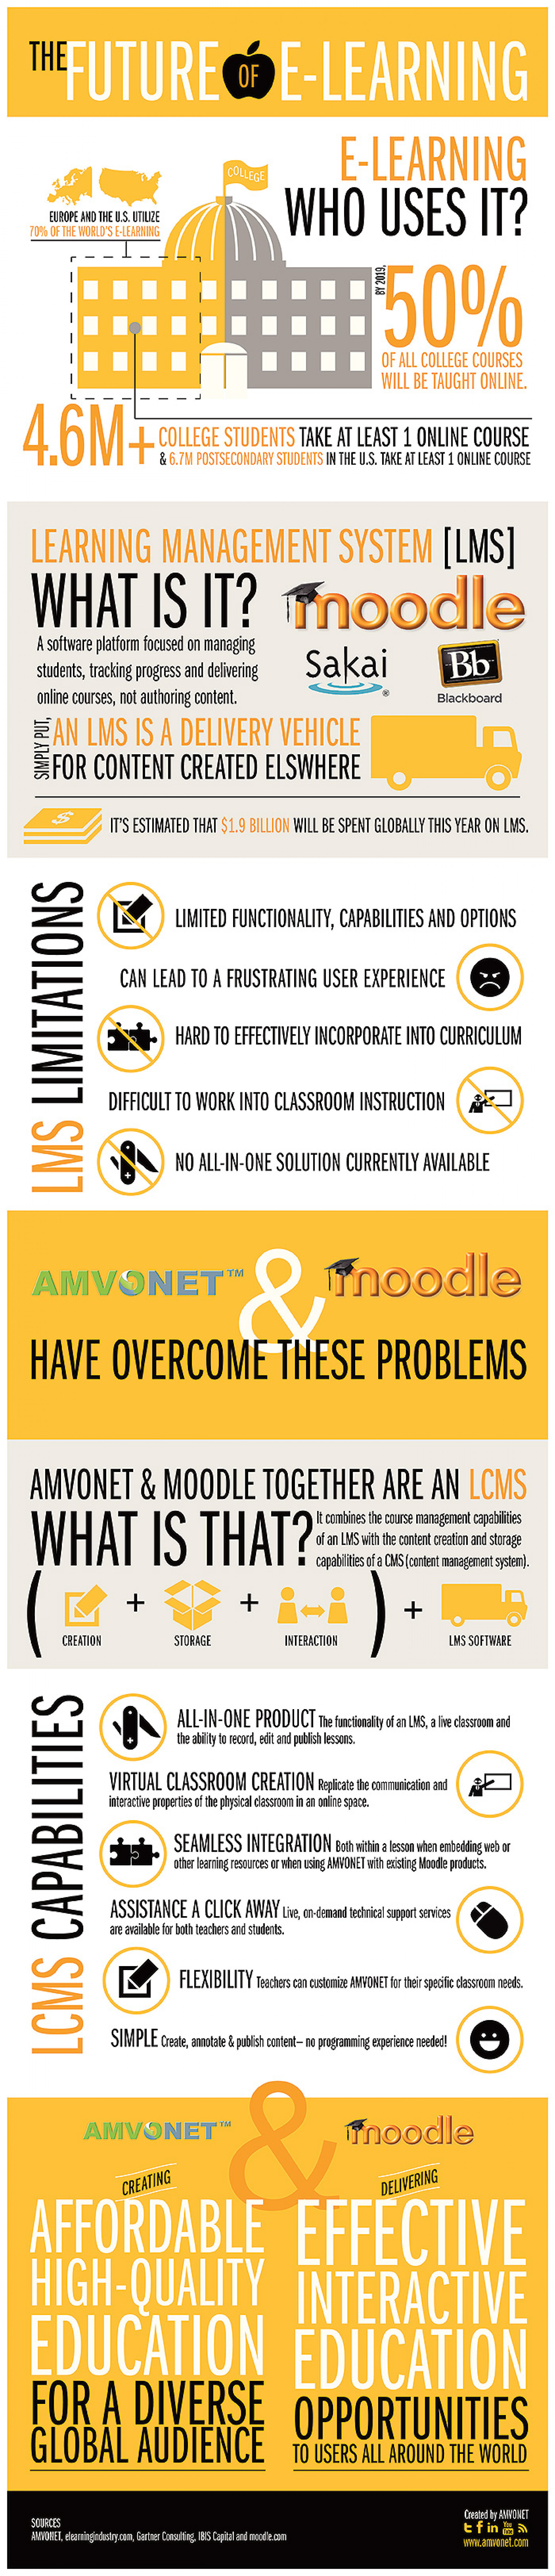 The Future of E-Learning Infographic